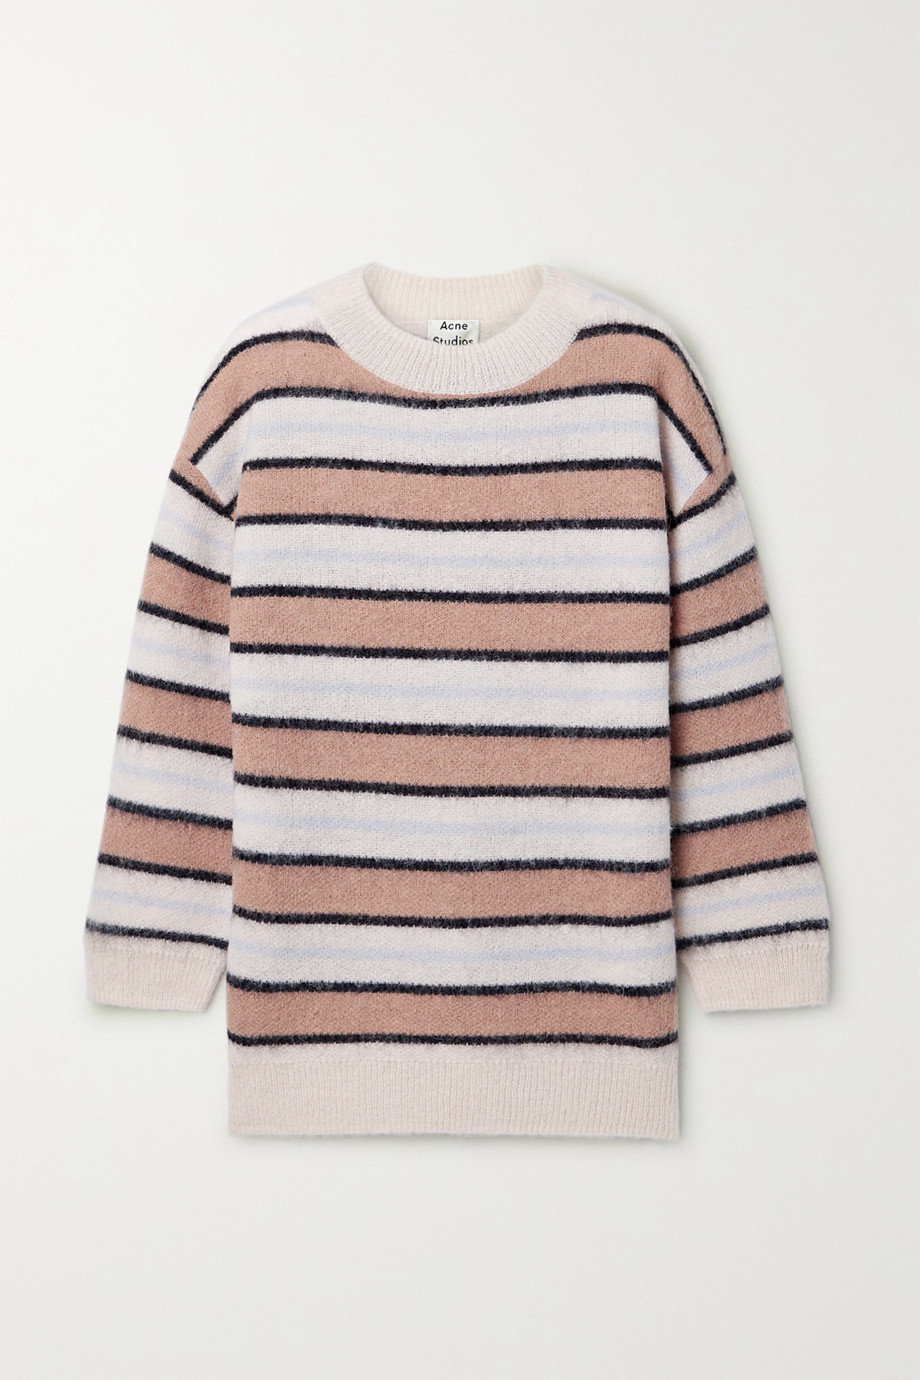 Acne Studios Striped knitted sweater